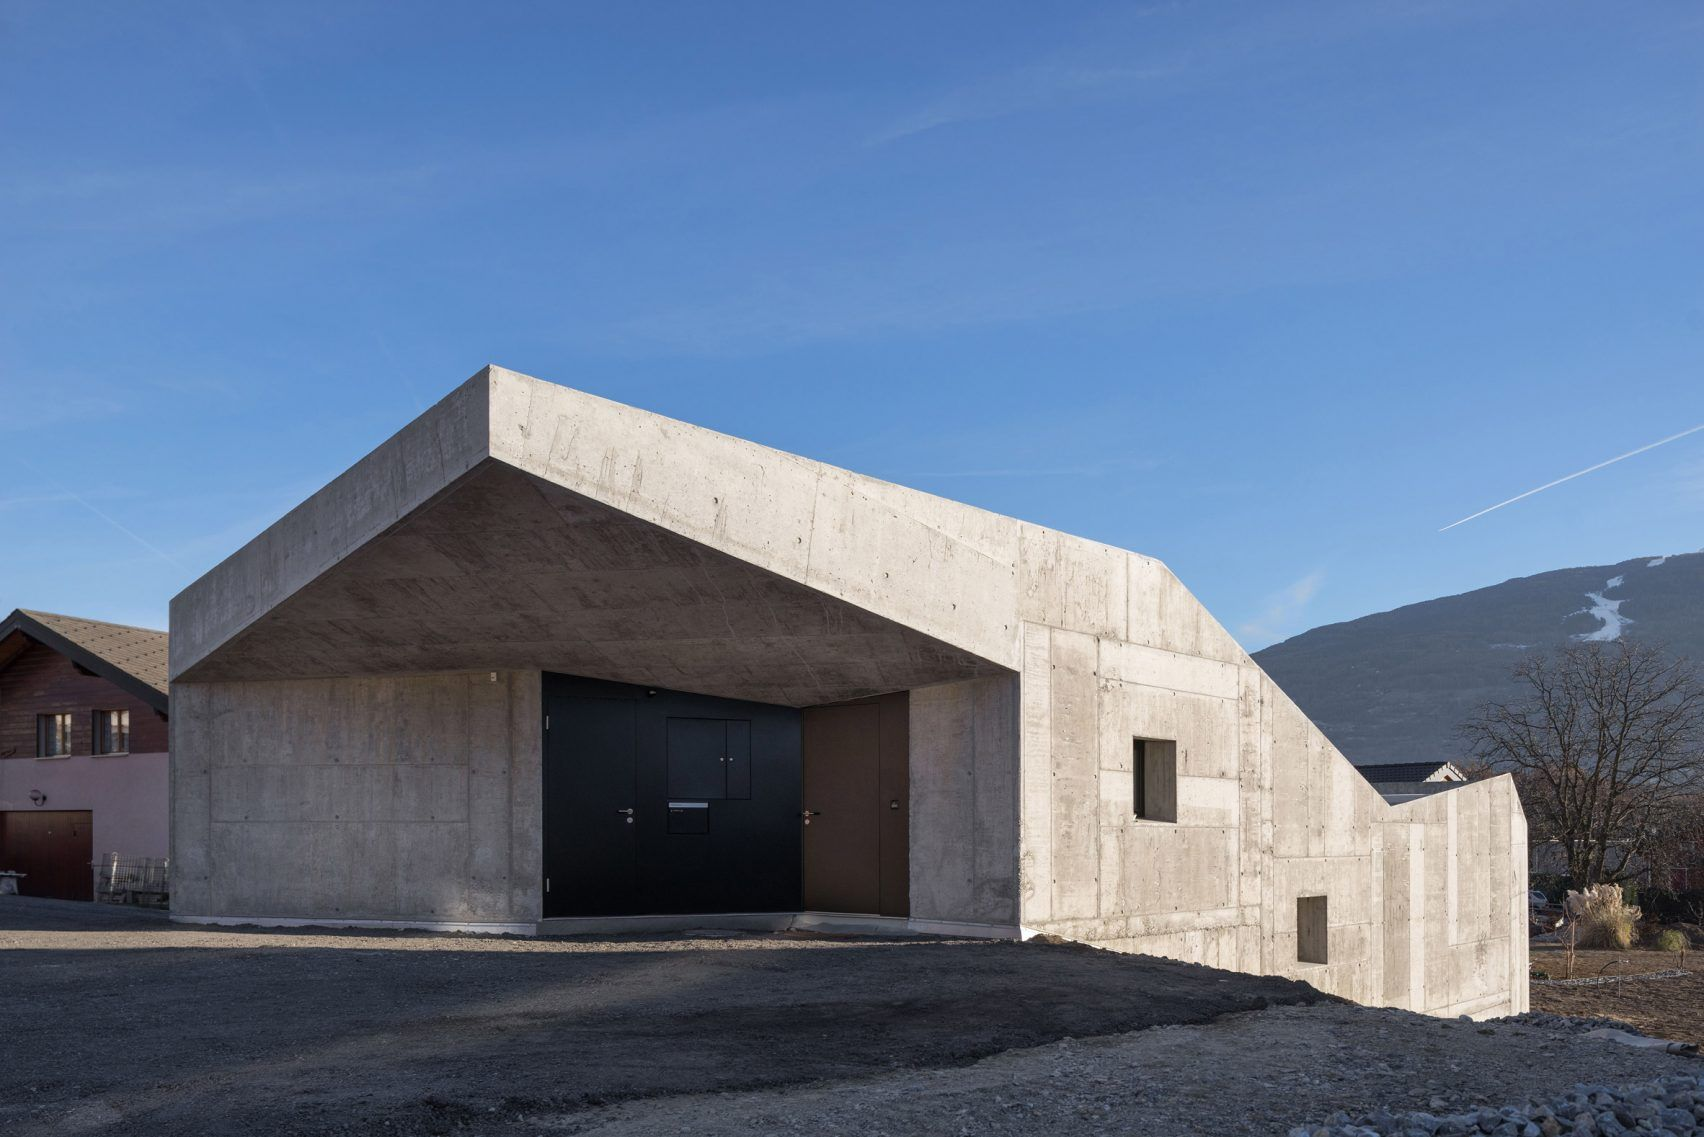 Anako Architecture Completes Fortress Like Concrete House In An Alpine Town Architecture Concrete House Concrete Houses